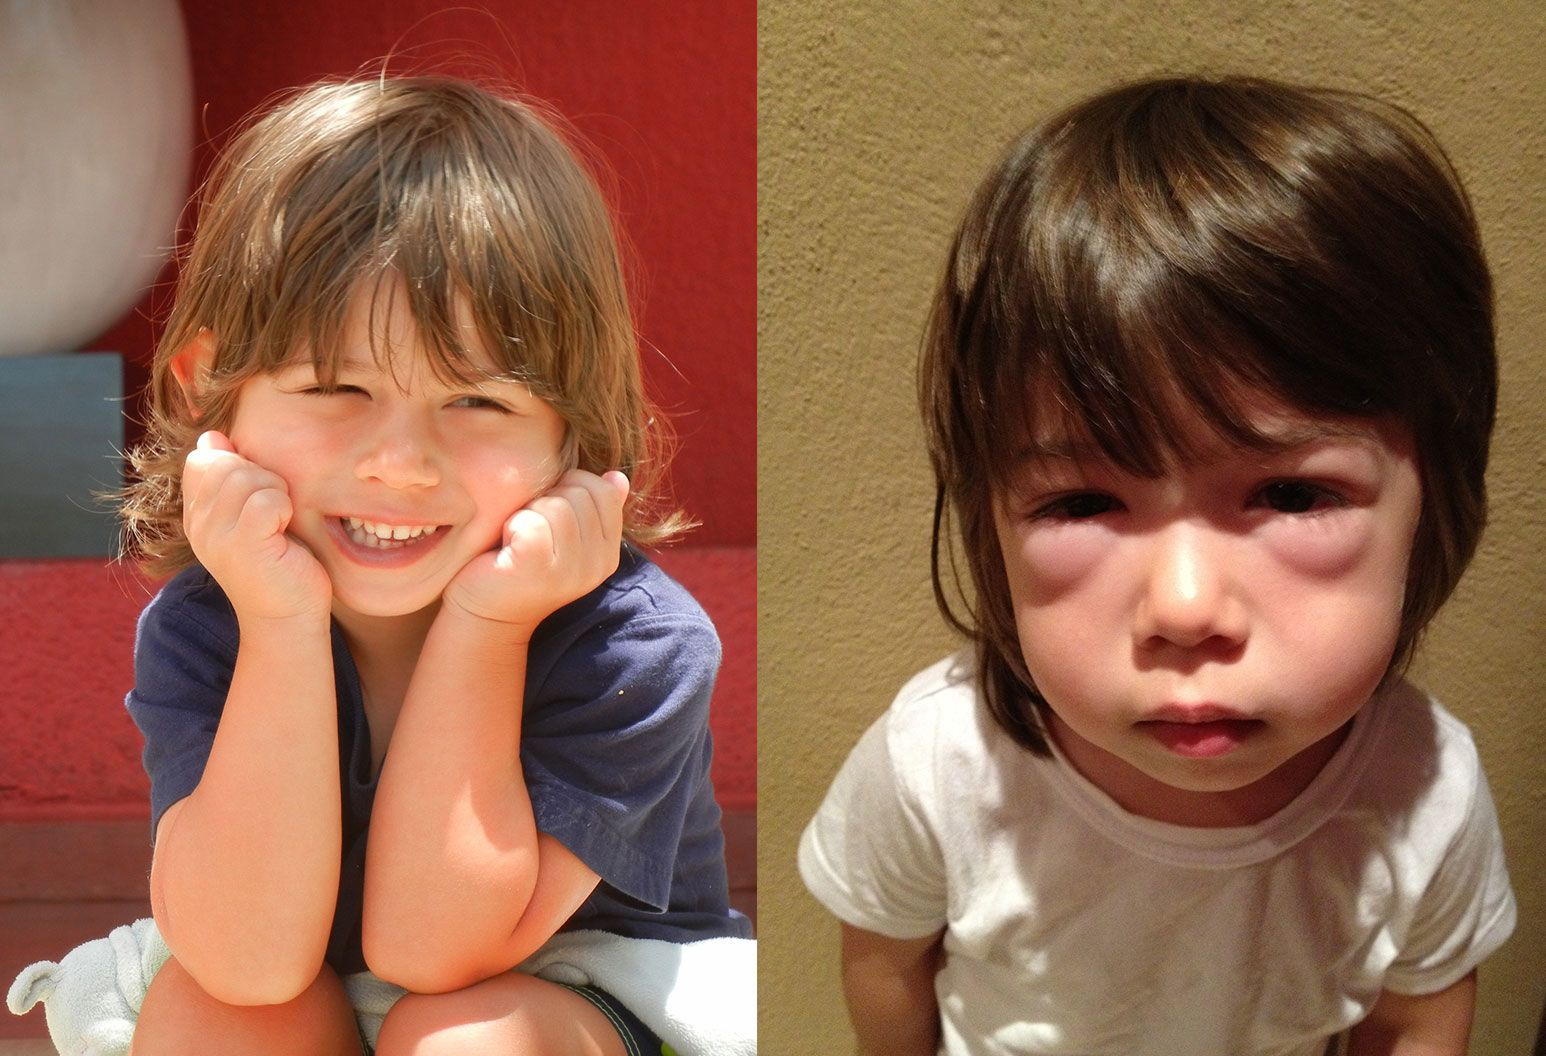 A photo comparison of a young boy smiling with long hair versus him with swollen eyes and a sad look in another photo.